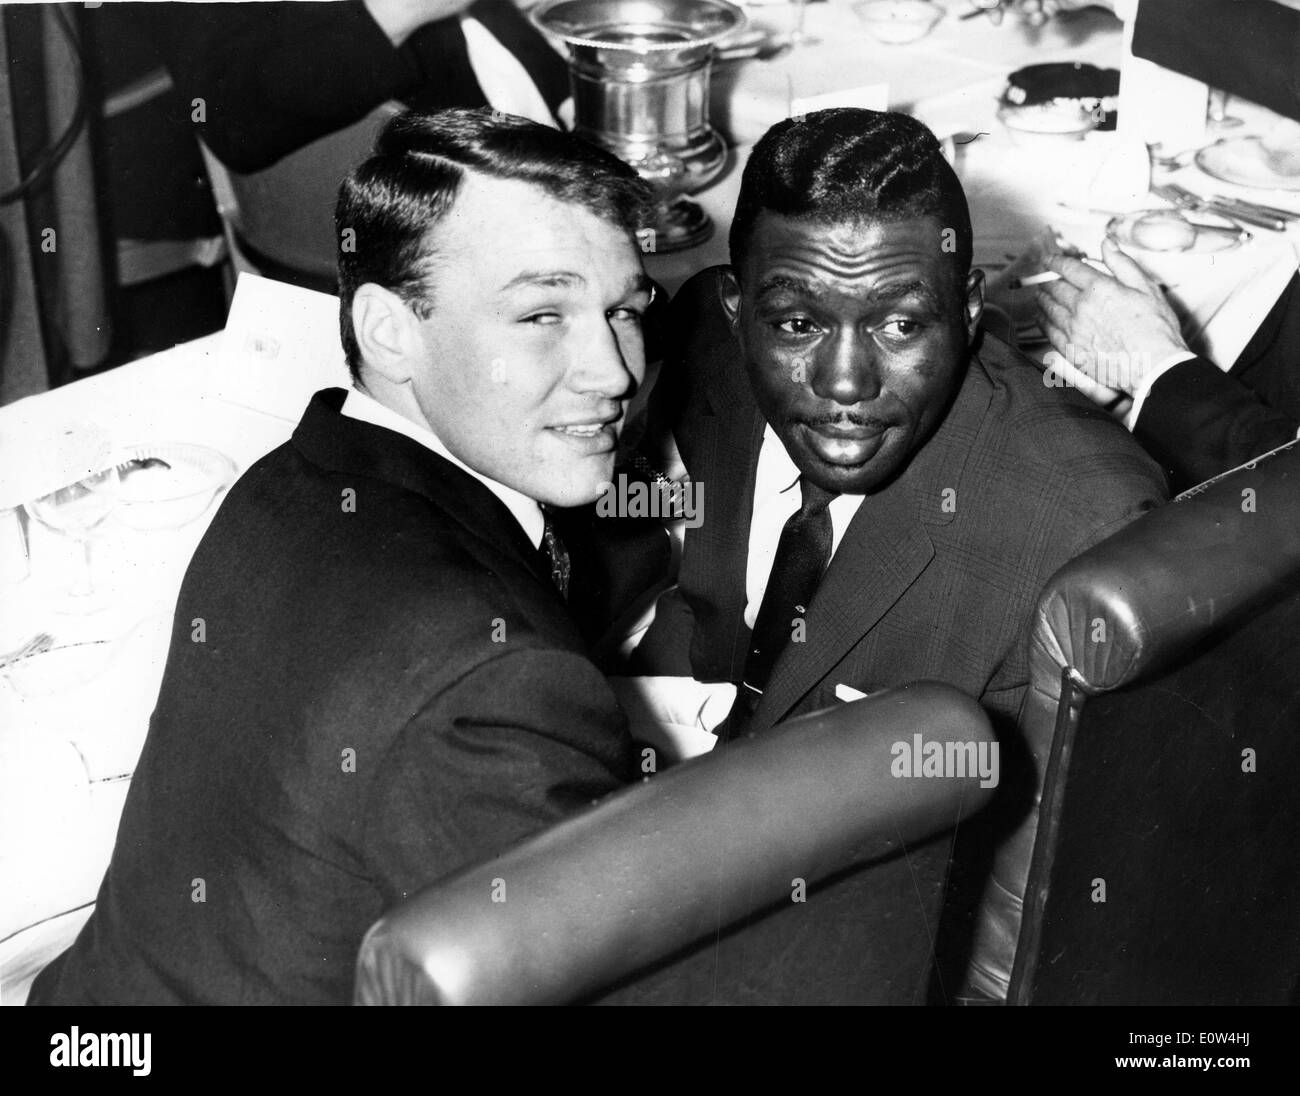 Boxers Dave Charnely and Joe Brown at Isow's - Stock Image